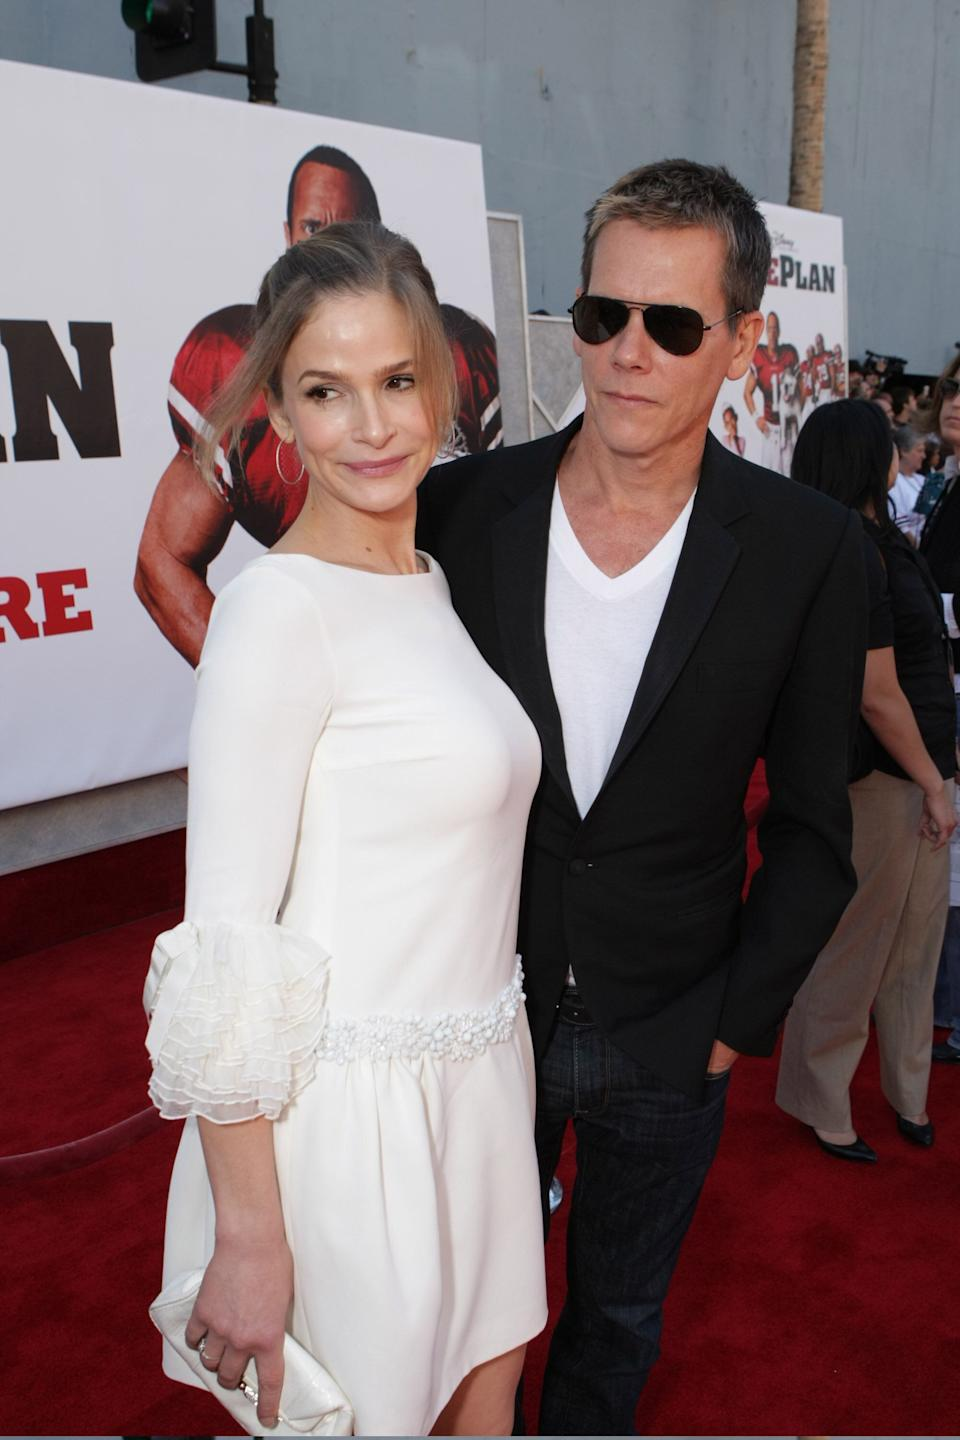 """The couple at the premiere of """"The Game Plan"""" at the El Capitan Theatre in Hollywood, California."""